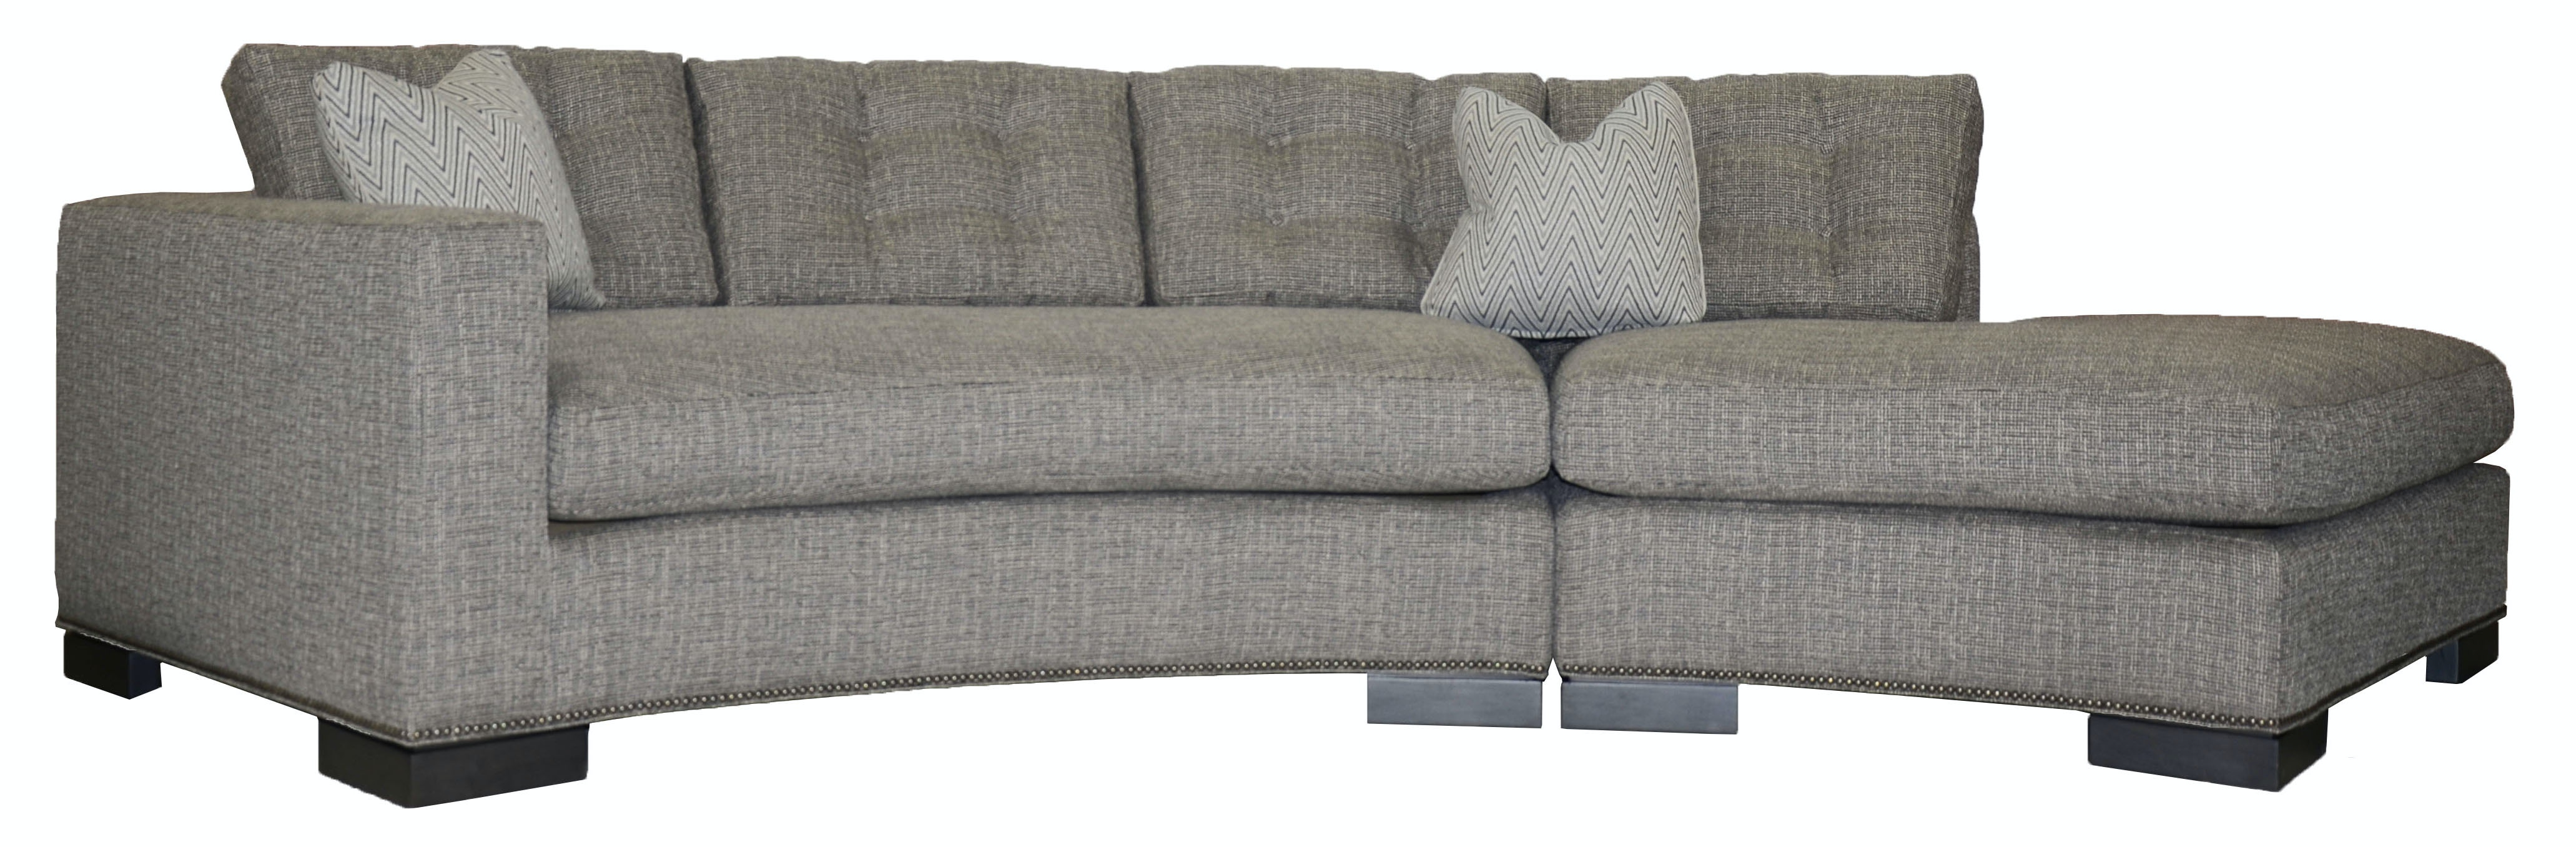 Lovely Sectional sofa Yardage